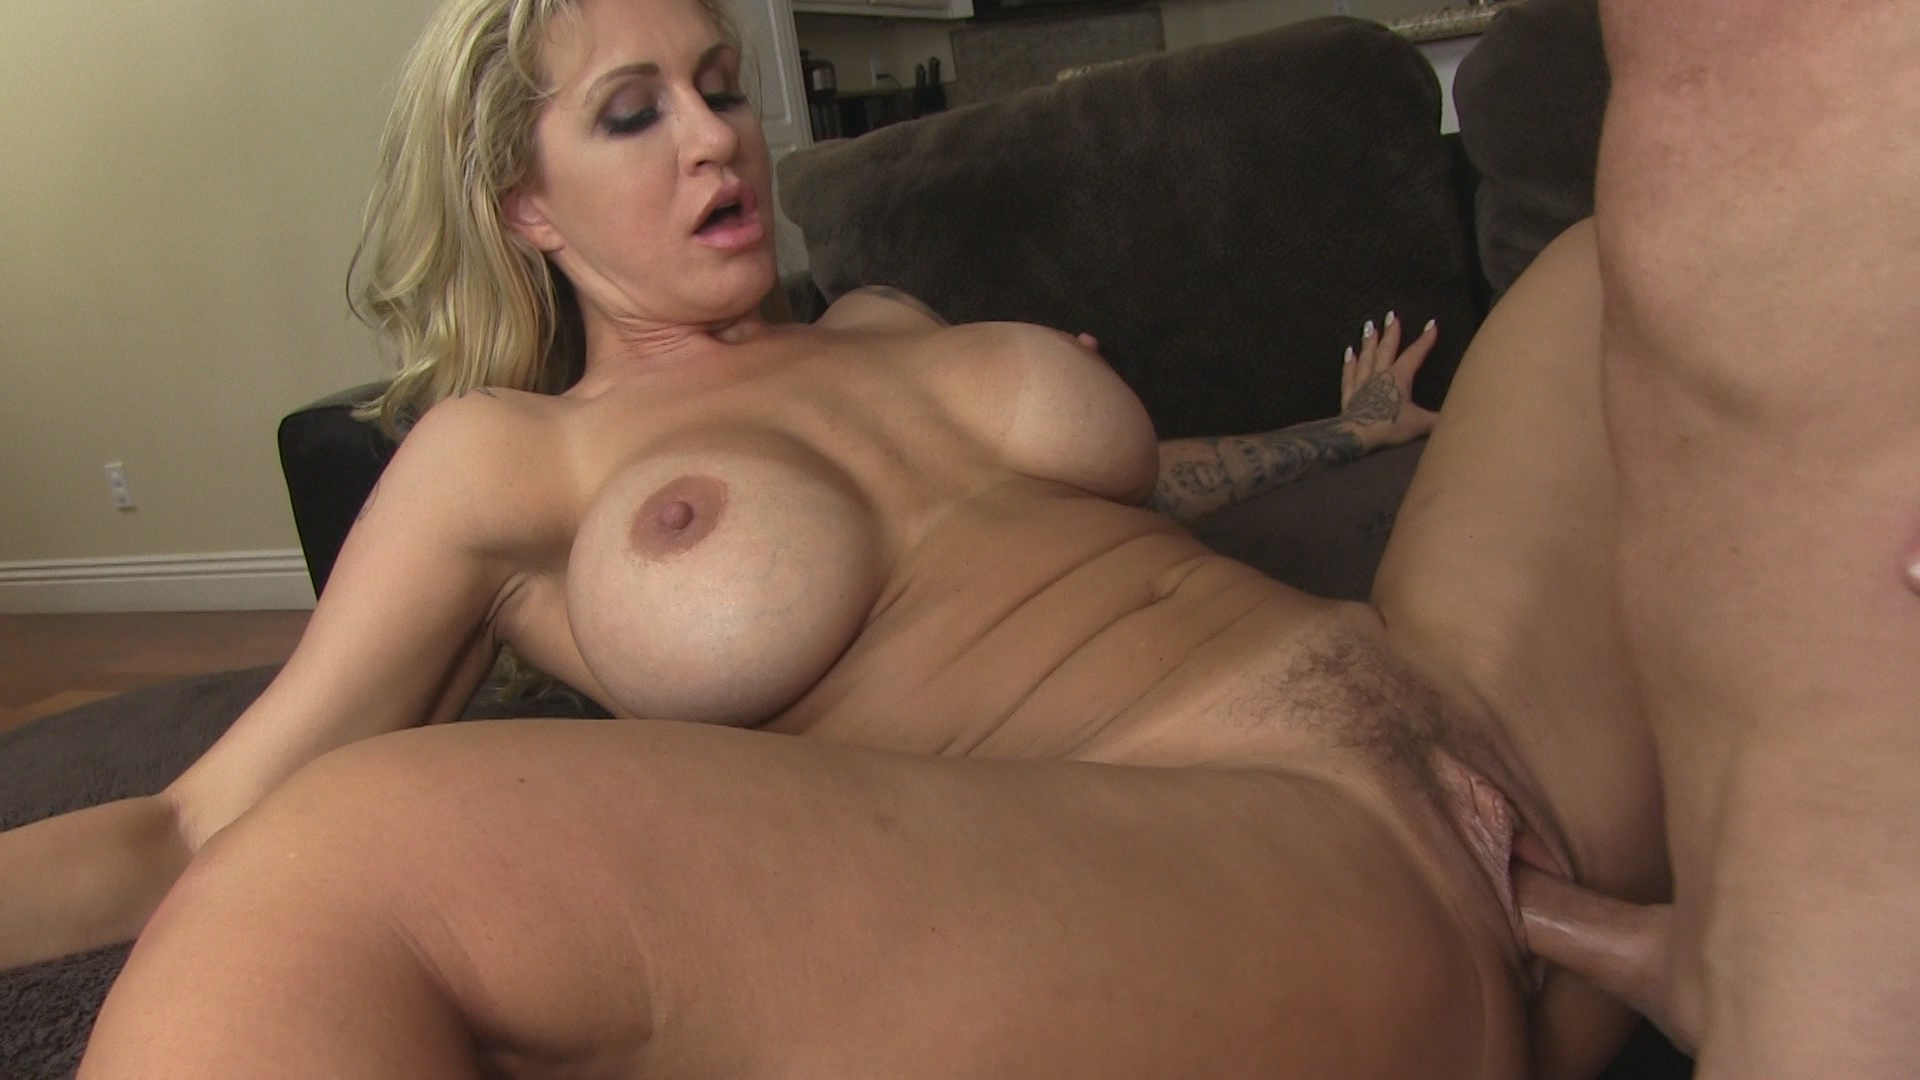 Download Xvideos -6908